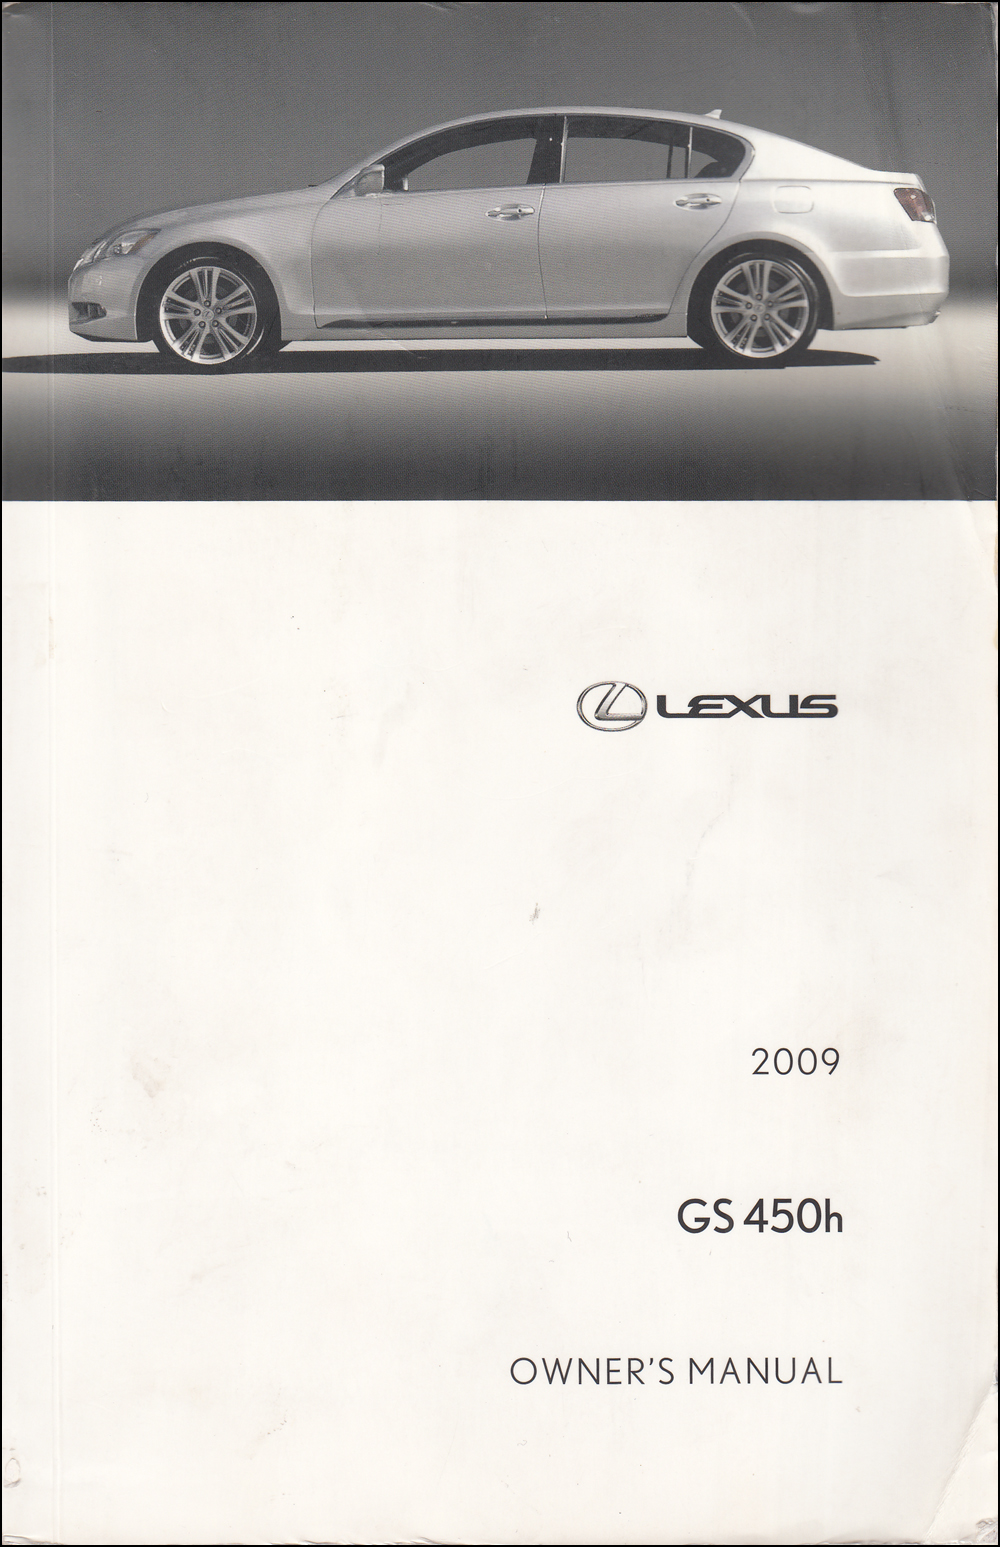 2009 Lexus GS 450h Owners Manual Original